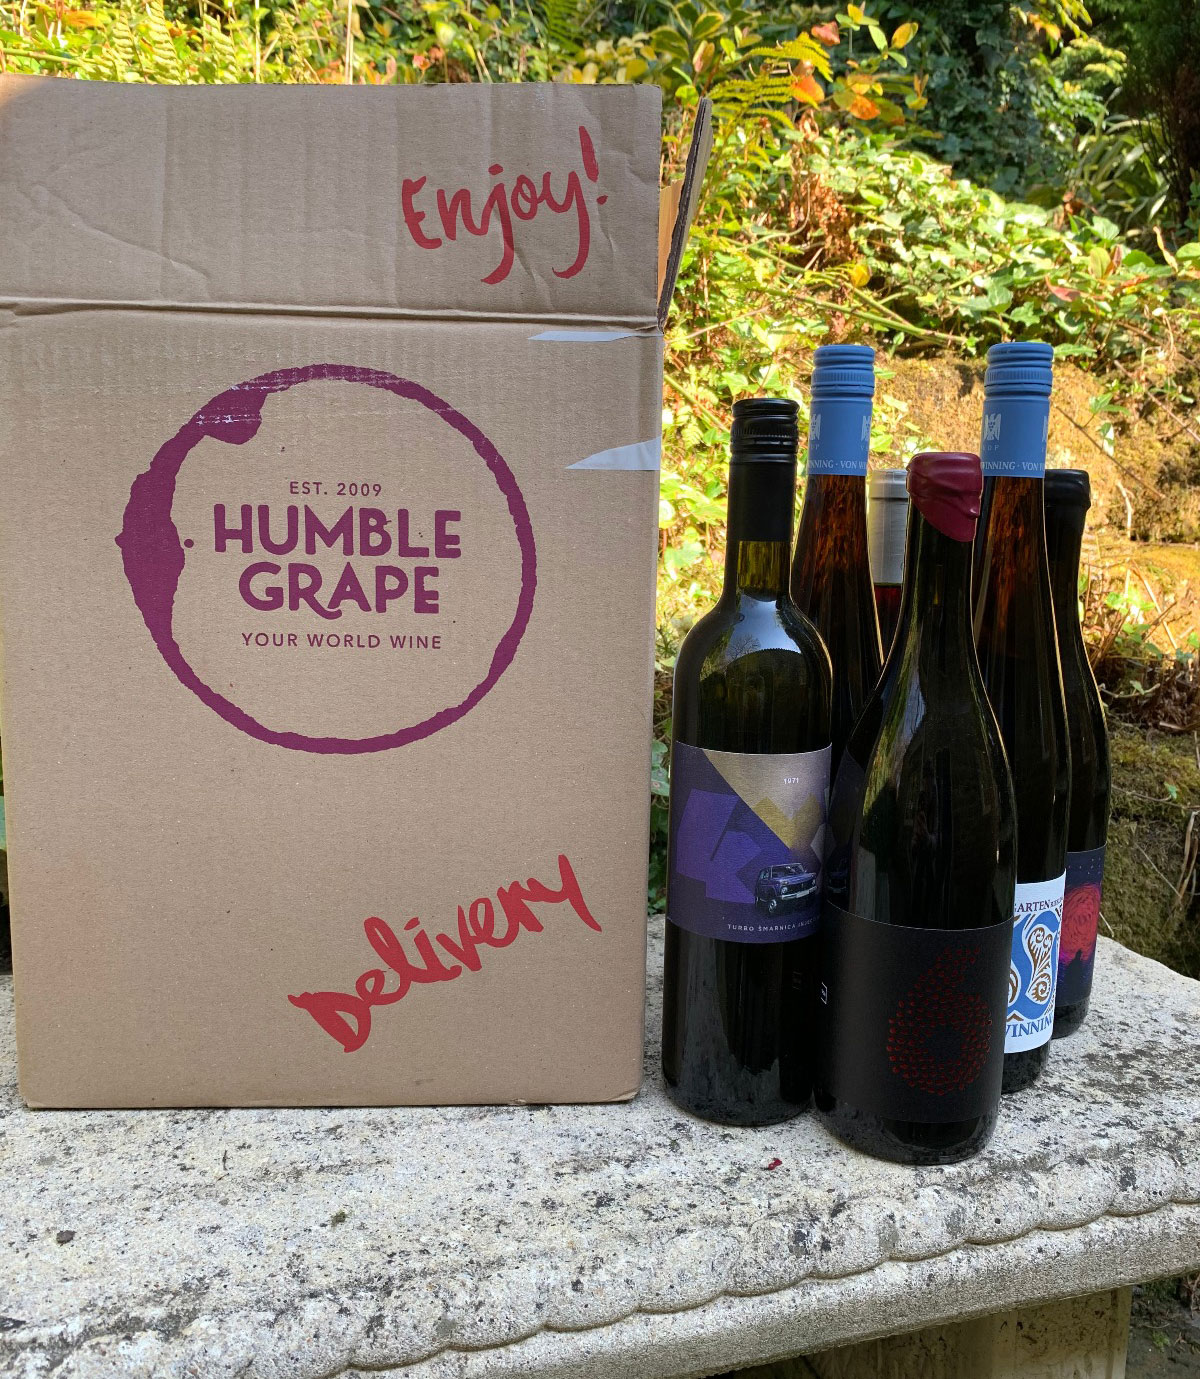 Taste along with wine producers with Humble Grape